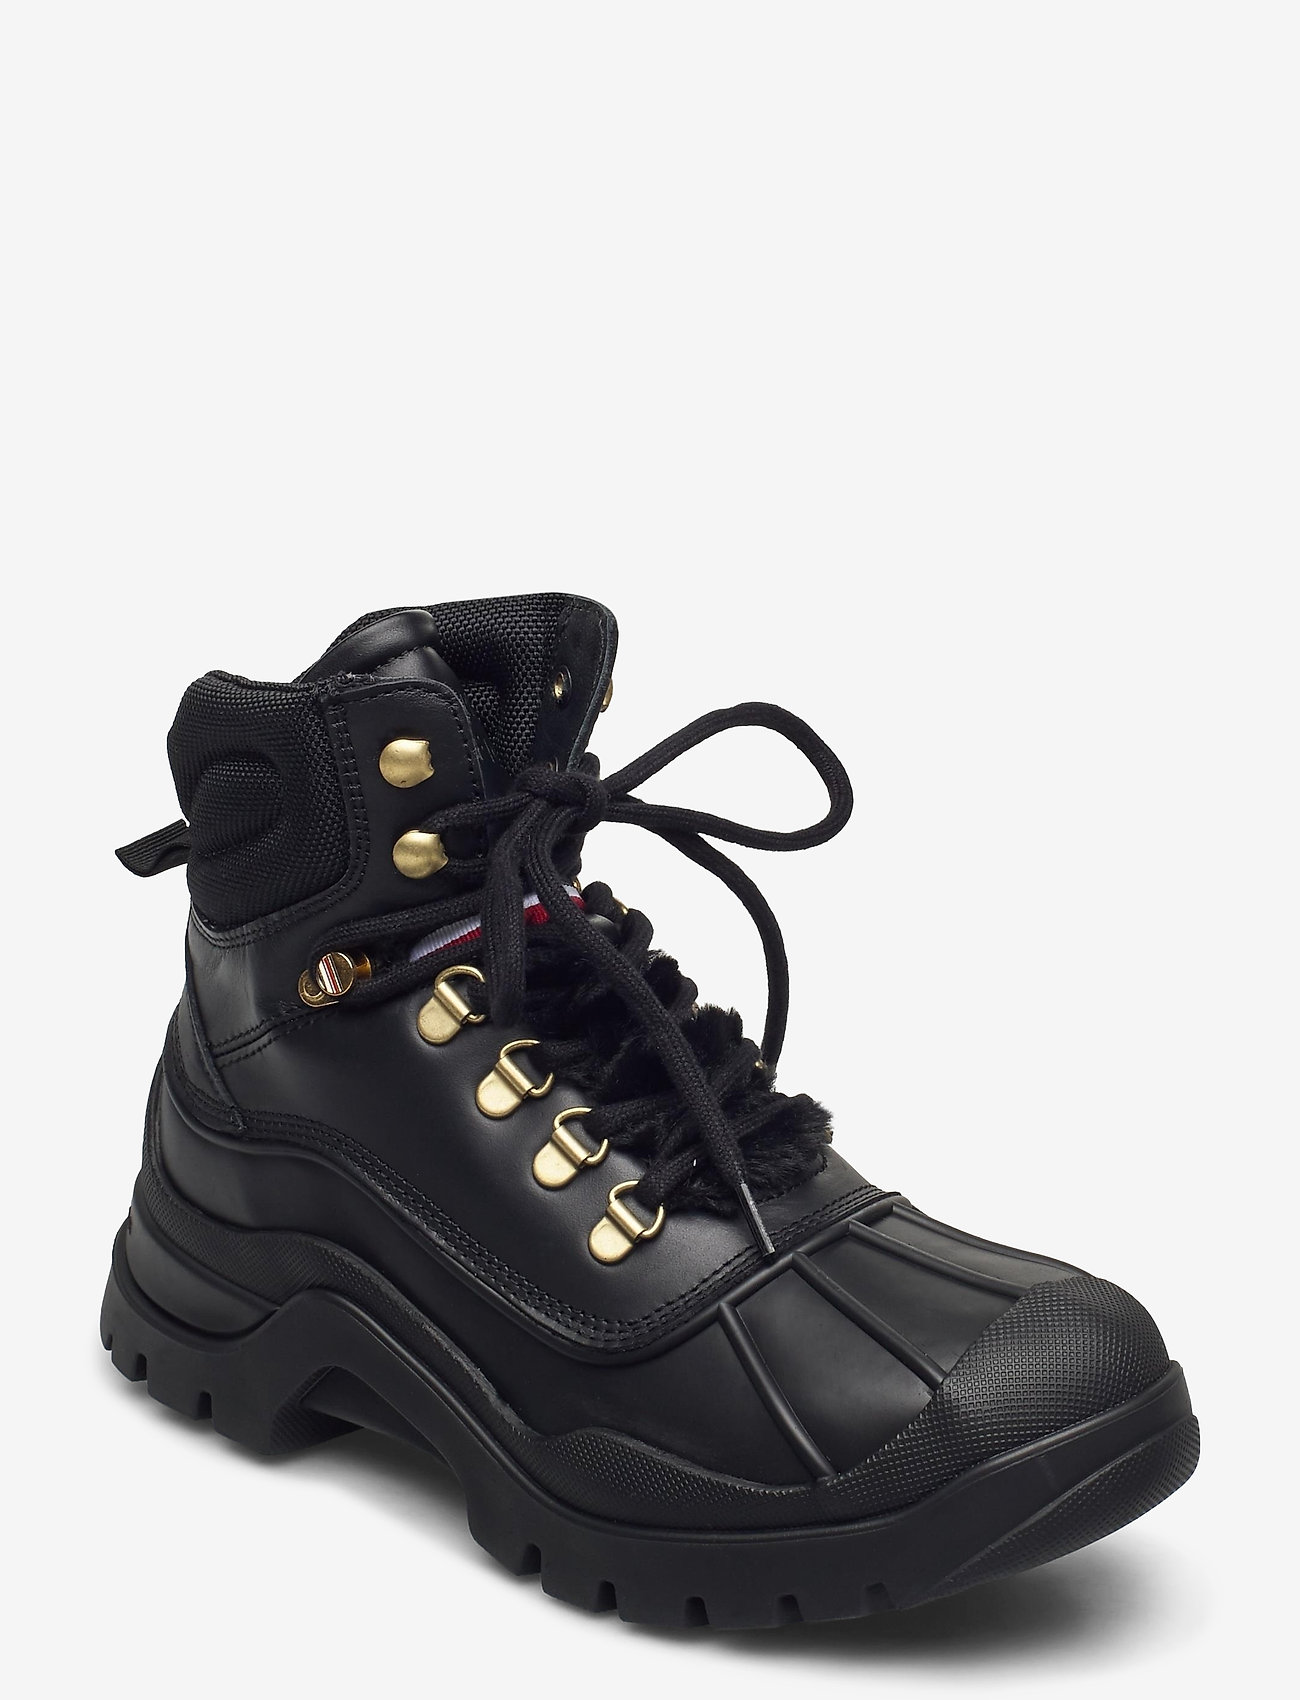 Tommy Hilfiger - OUTDOORSY TOMMY FLAT BOOT - flat ankle boots - black - 0